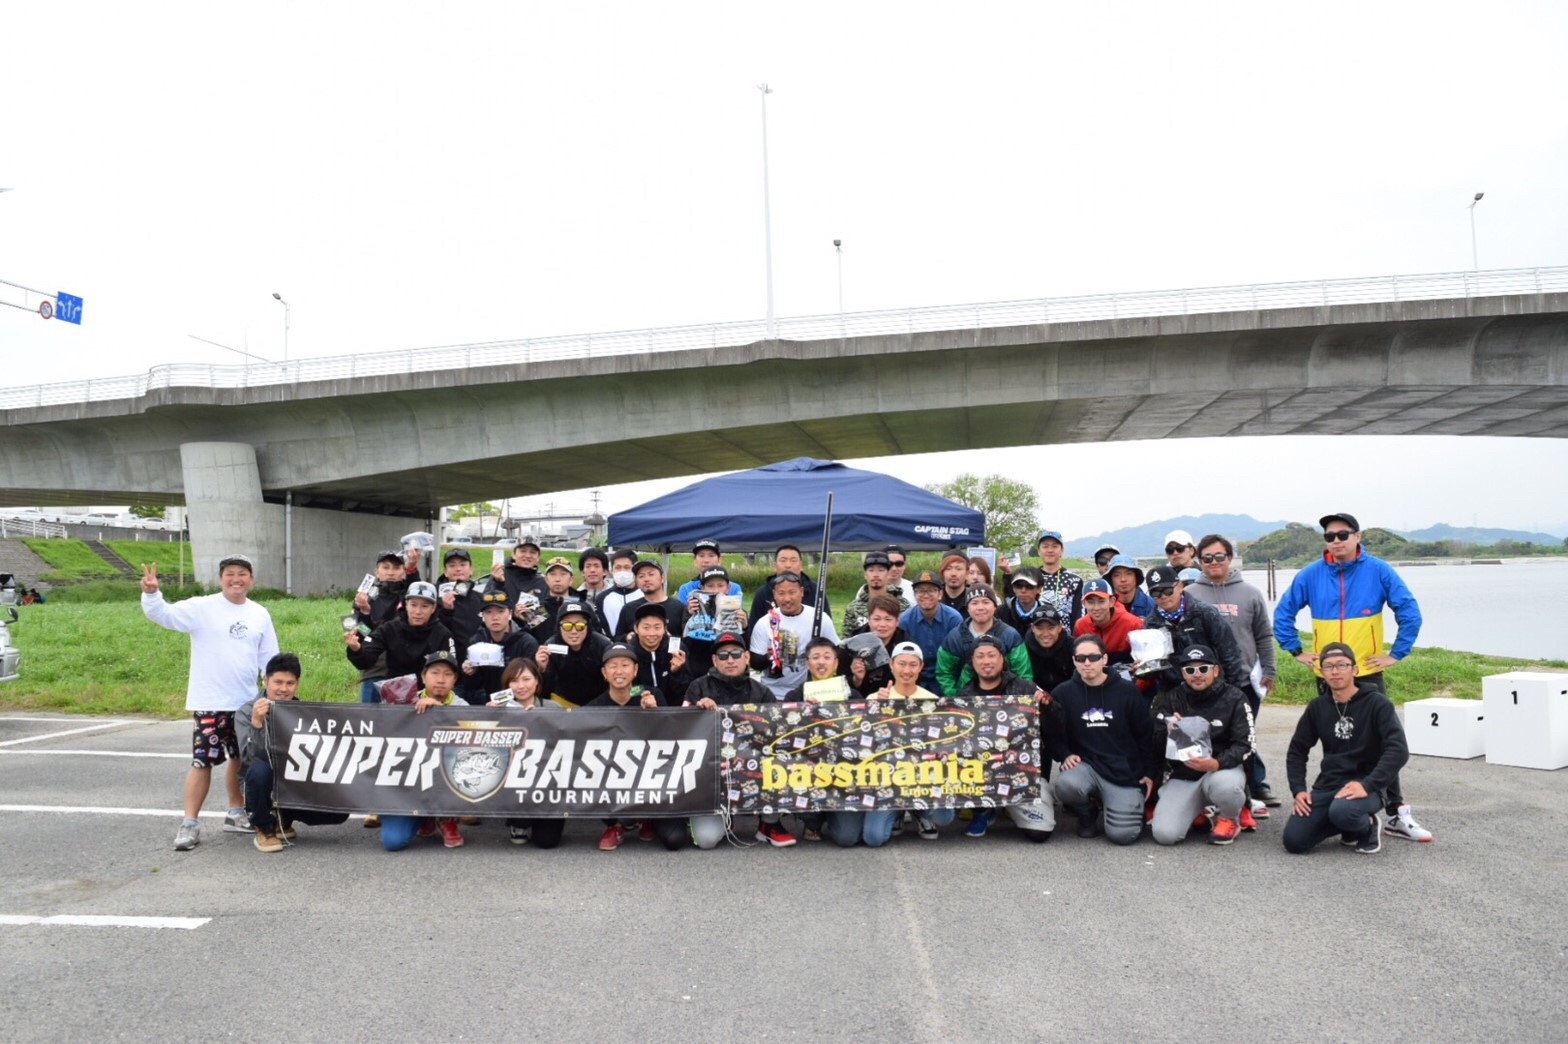 SUPER BASSER TOURNAMENT bassmania杯  福岡 / 遠賀川  【2019年4月28日】